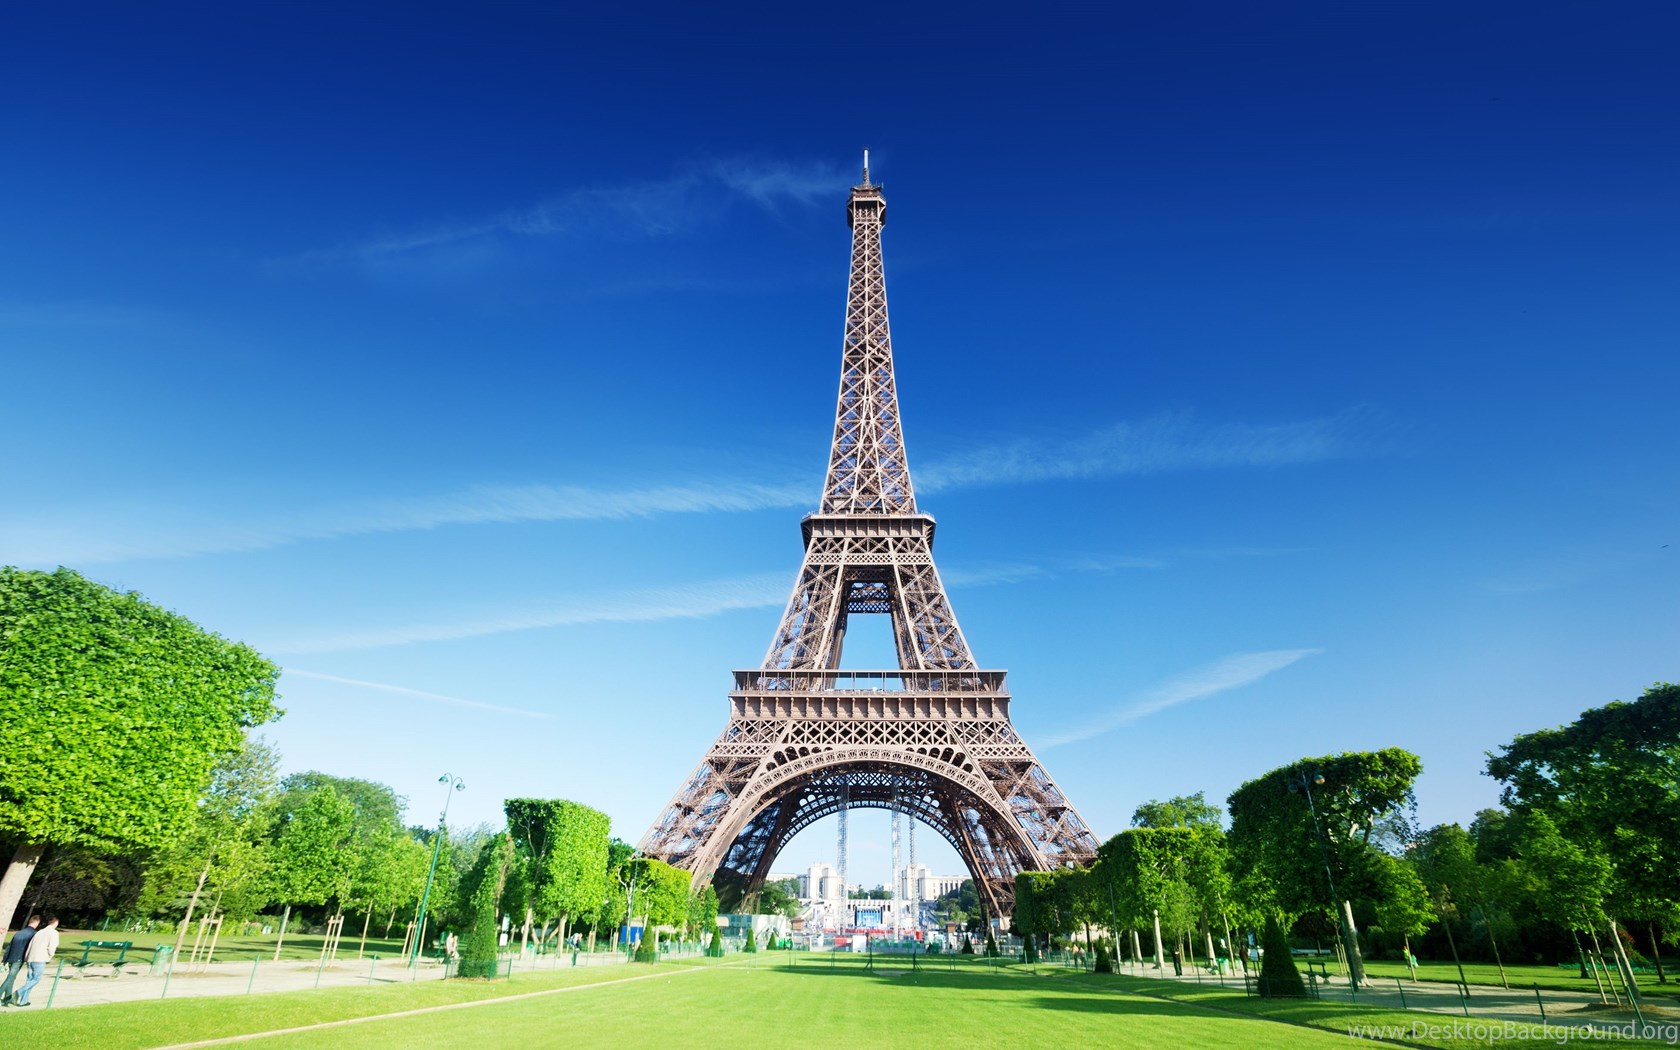 1920x1080px Cute Tumblr Wallpapers Eiffel Tower Desktop Background